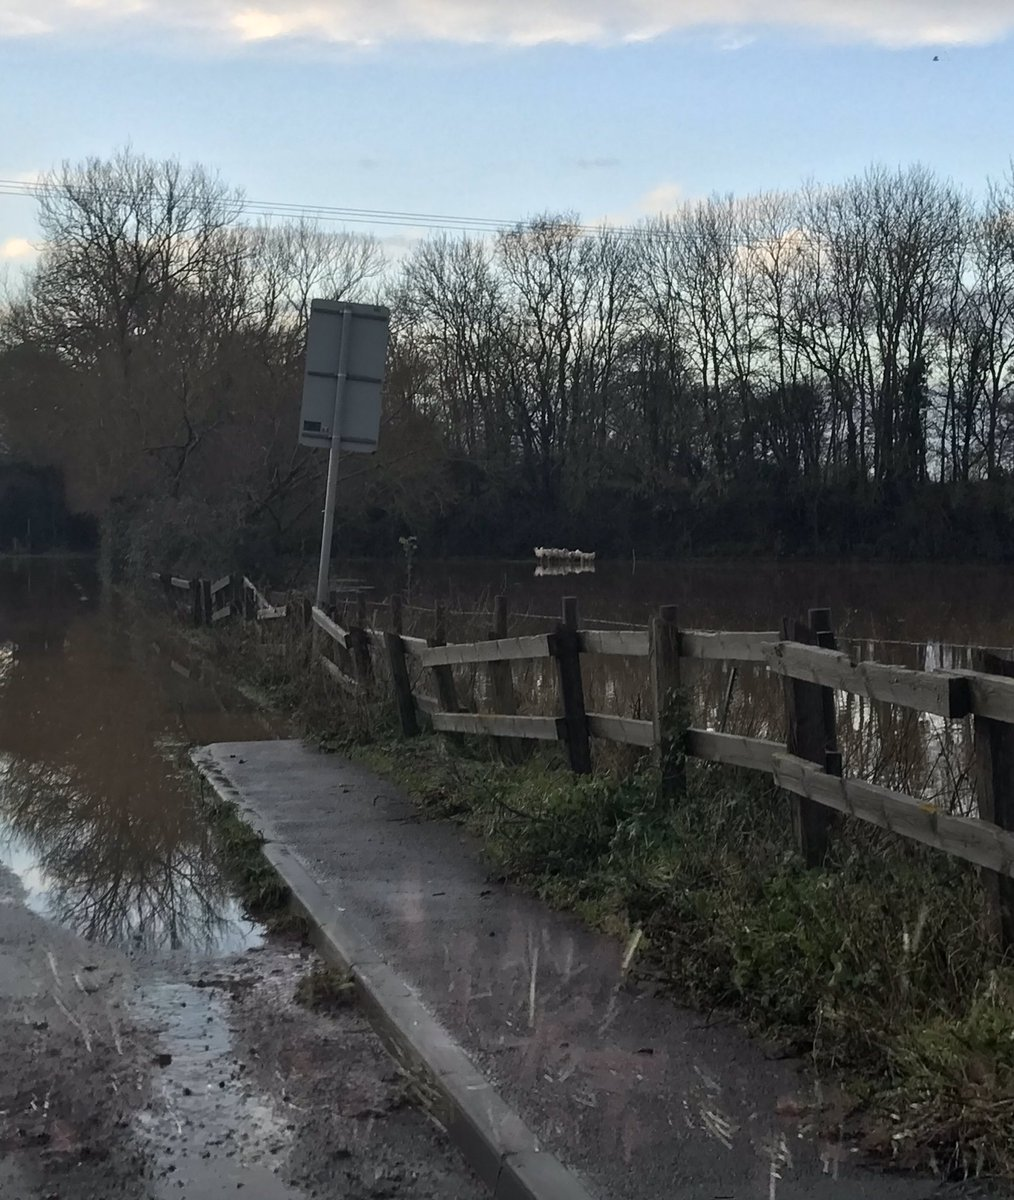 Sheep stranded in Somerset floods this morning. Fortunately farmer was able to rescue them without our intervention this time!! 🐑🐑 💦💦💦 #britishweather #soggysheep @RSPCA_official 16